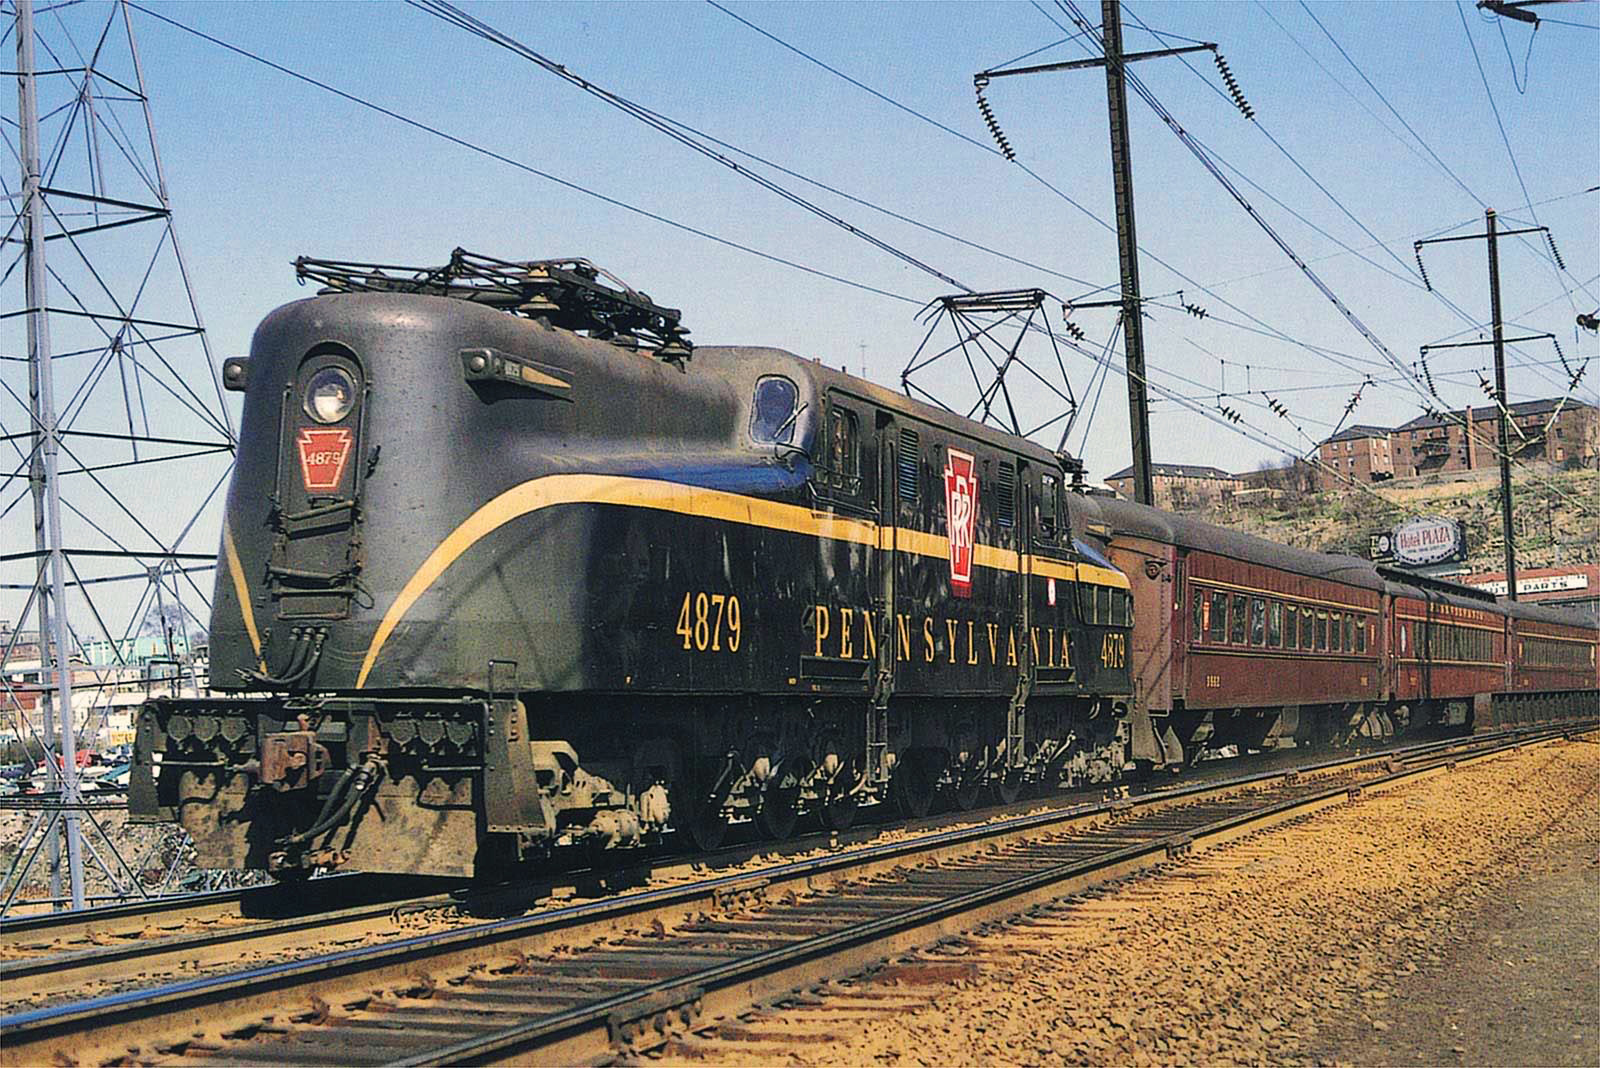 The Pennsylvania Railroad